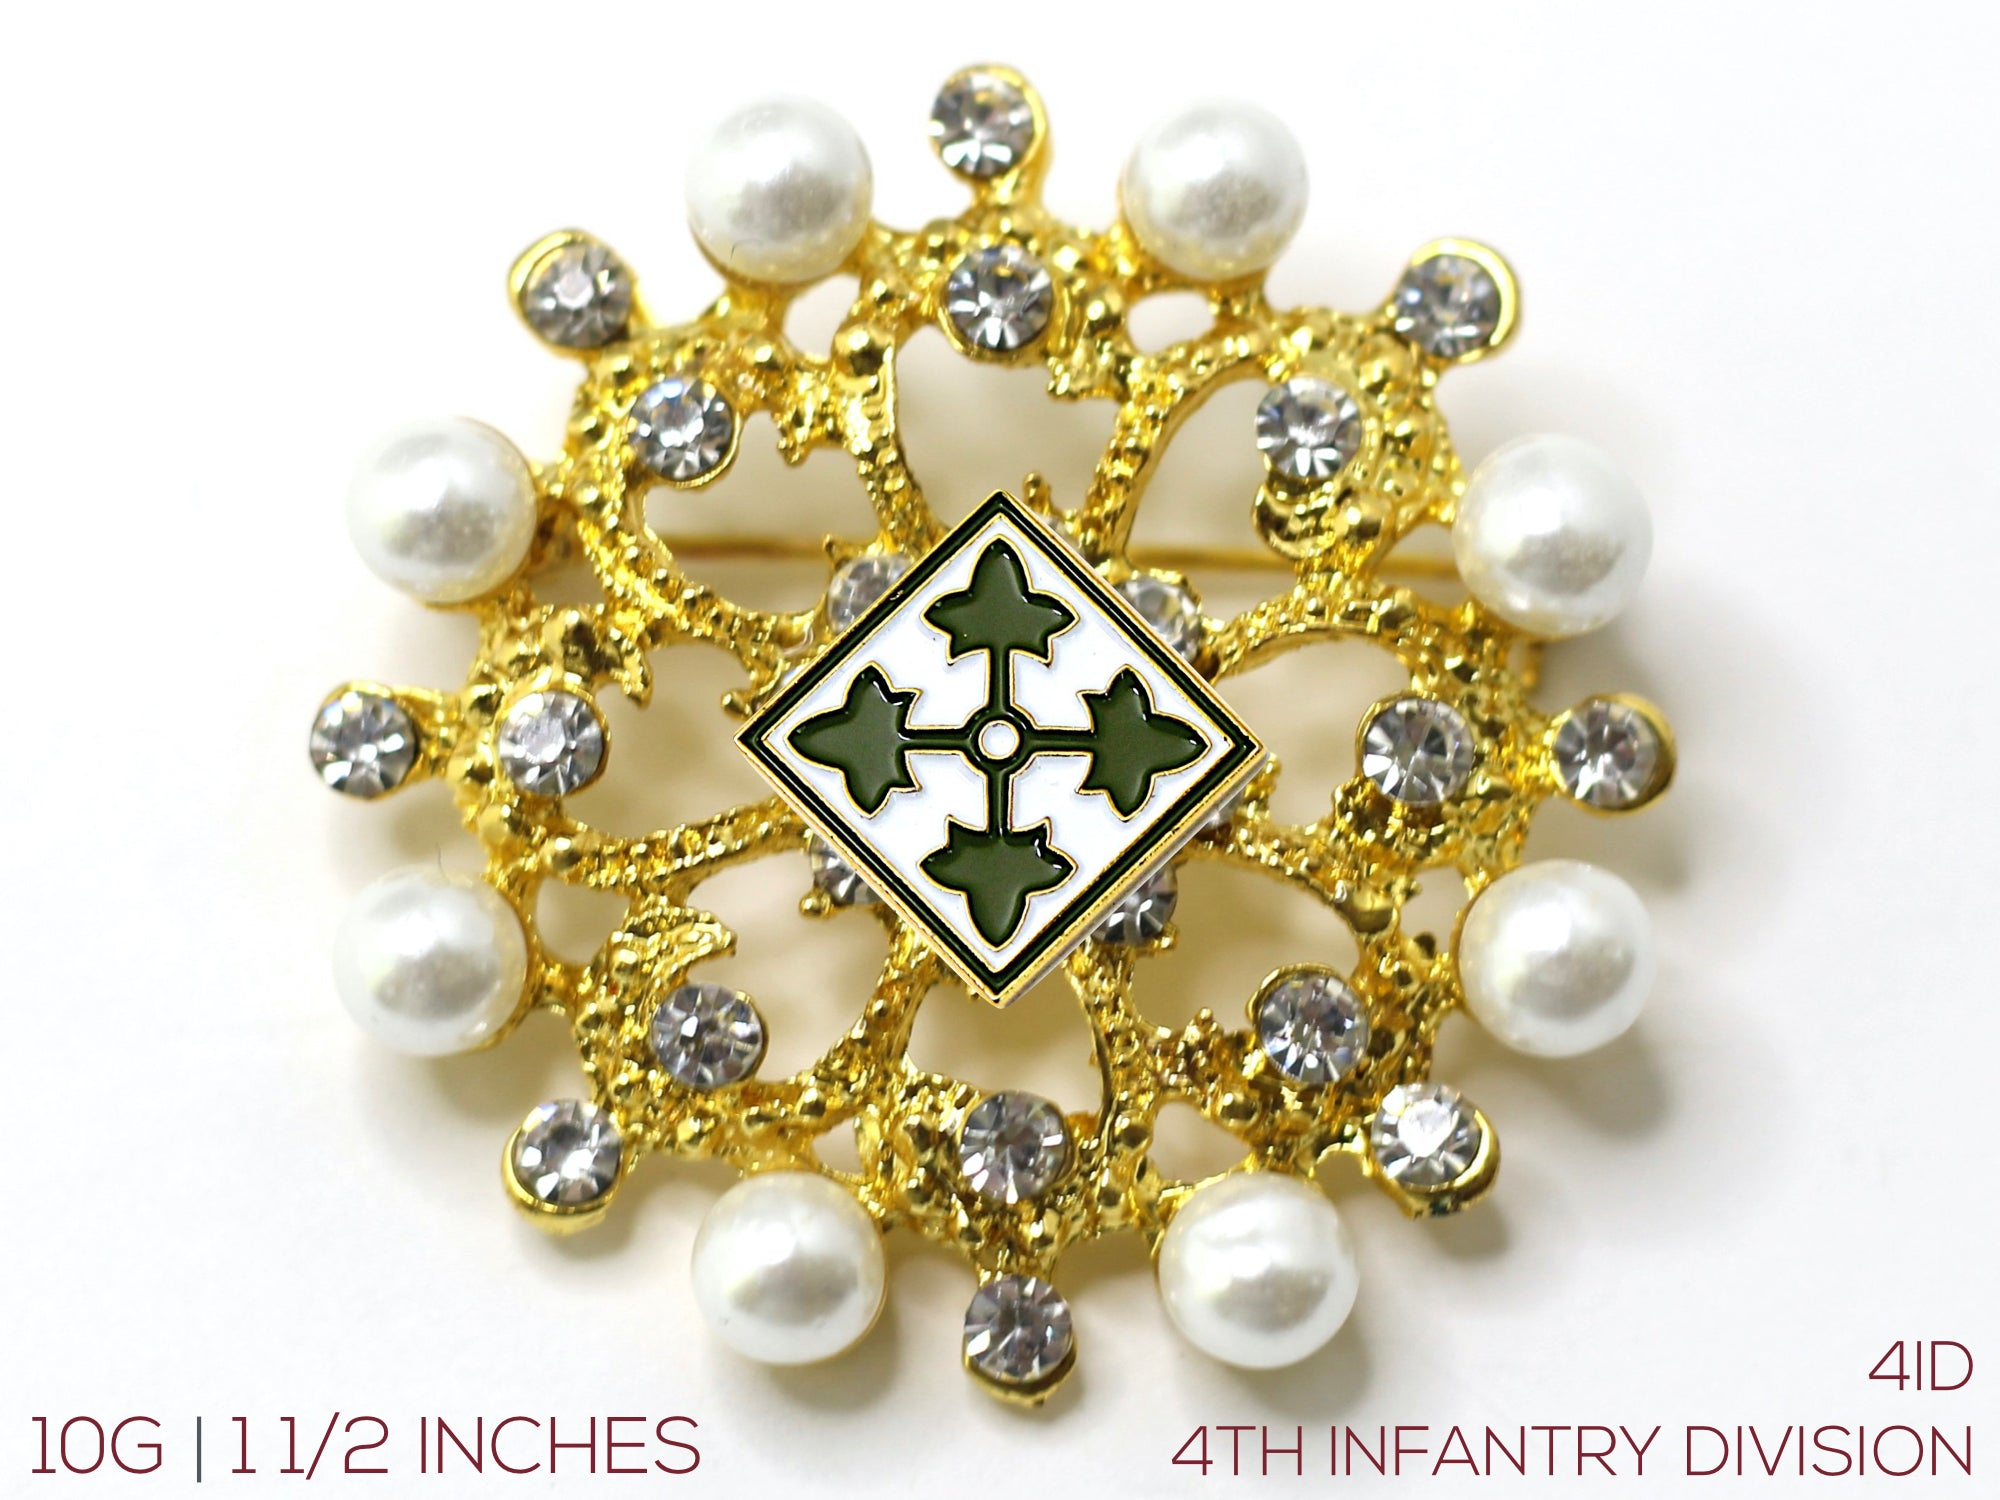 4th Infantry Division Brooch